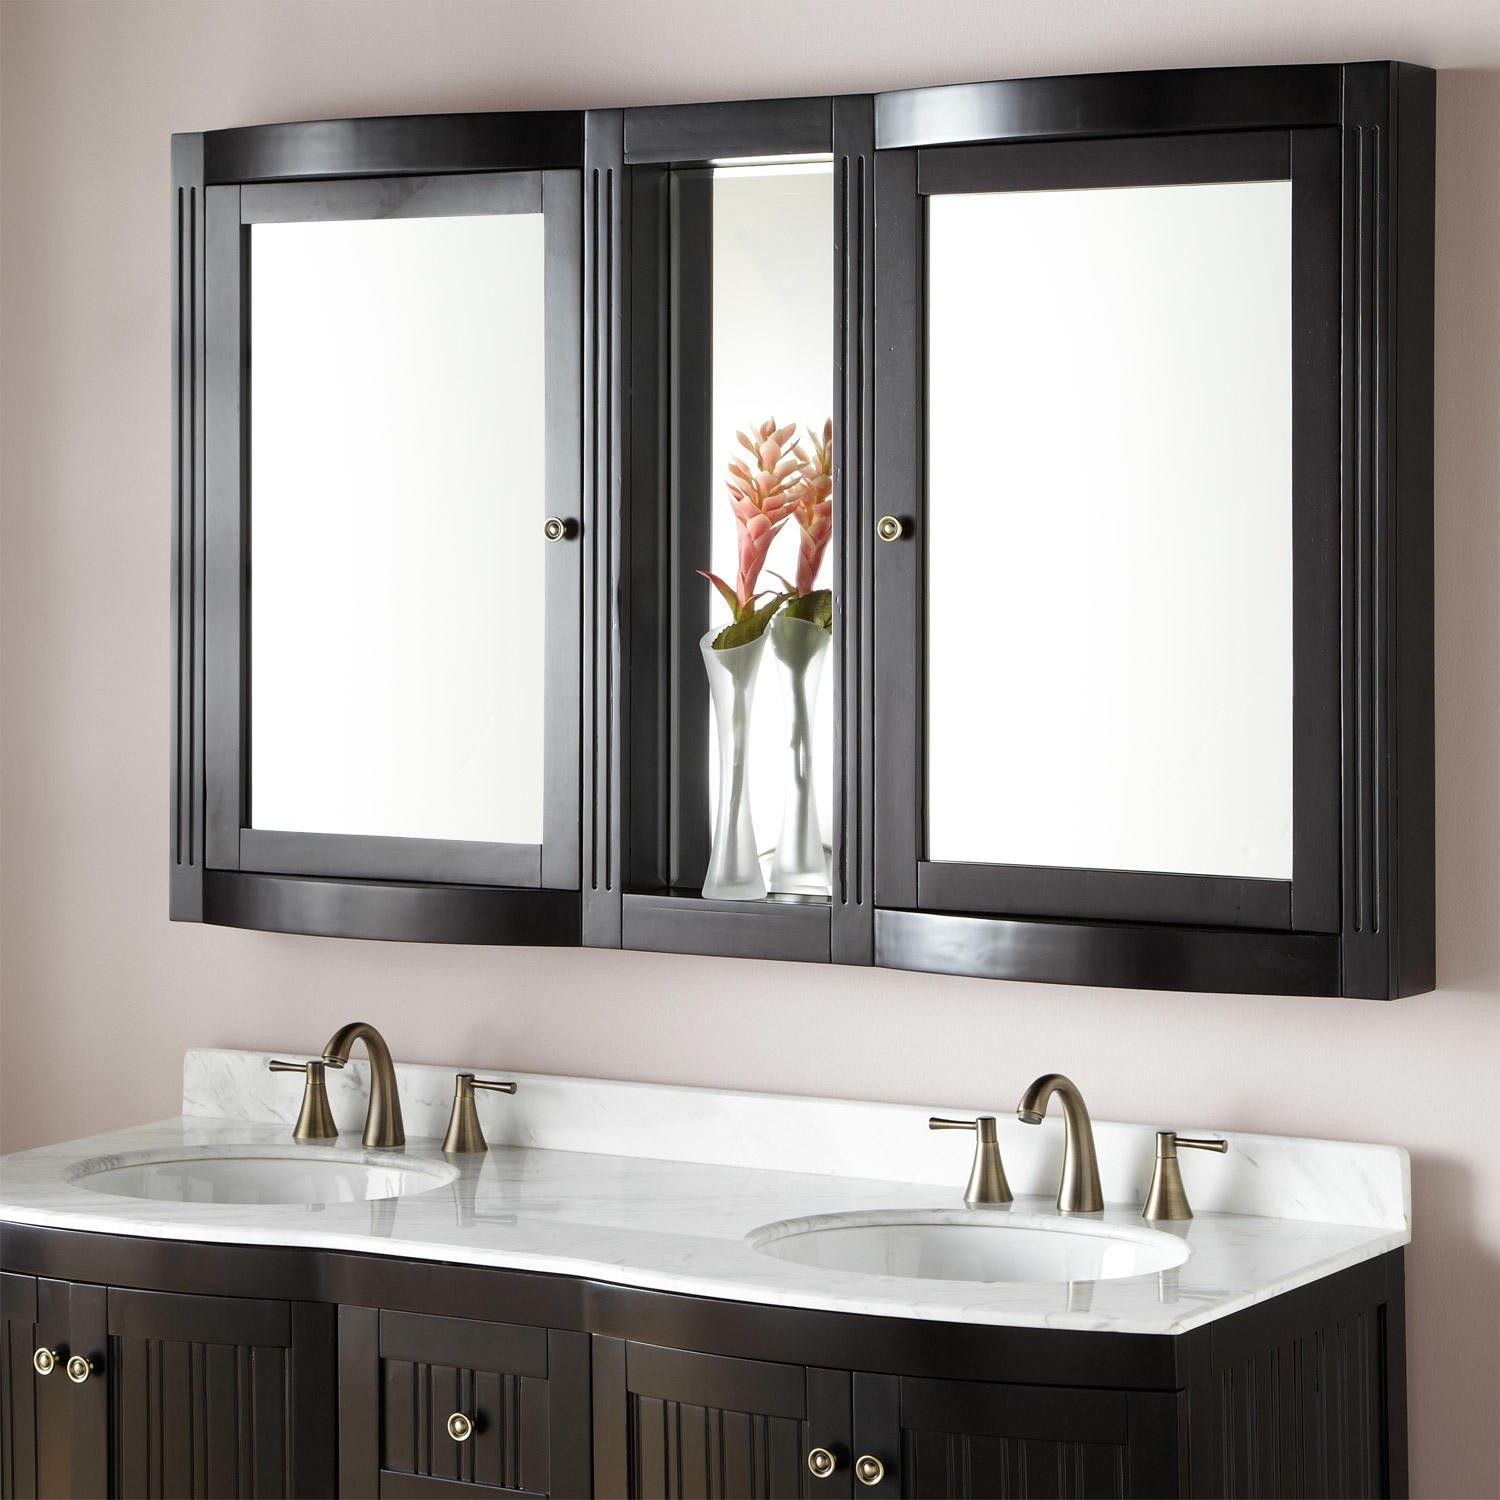 Large Bathroom Mirrored Medicine Cabinets | http://drrw.us ...